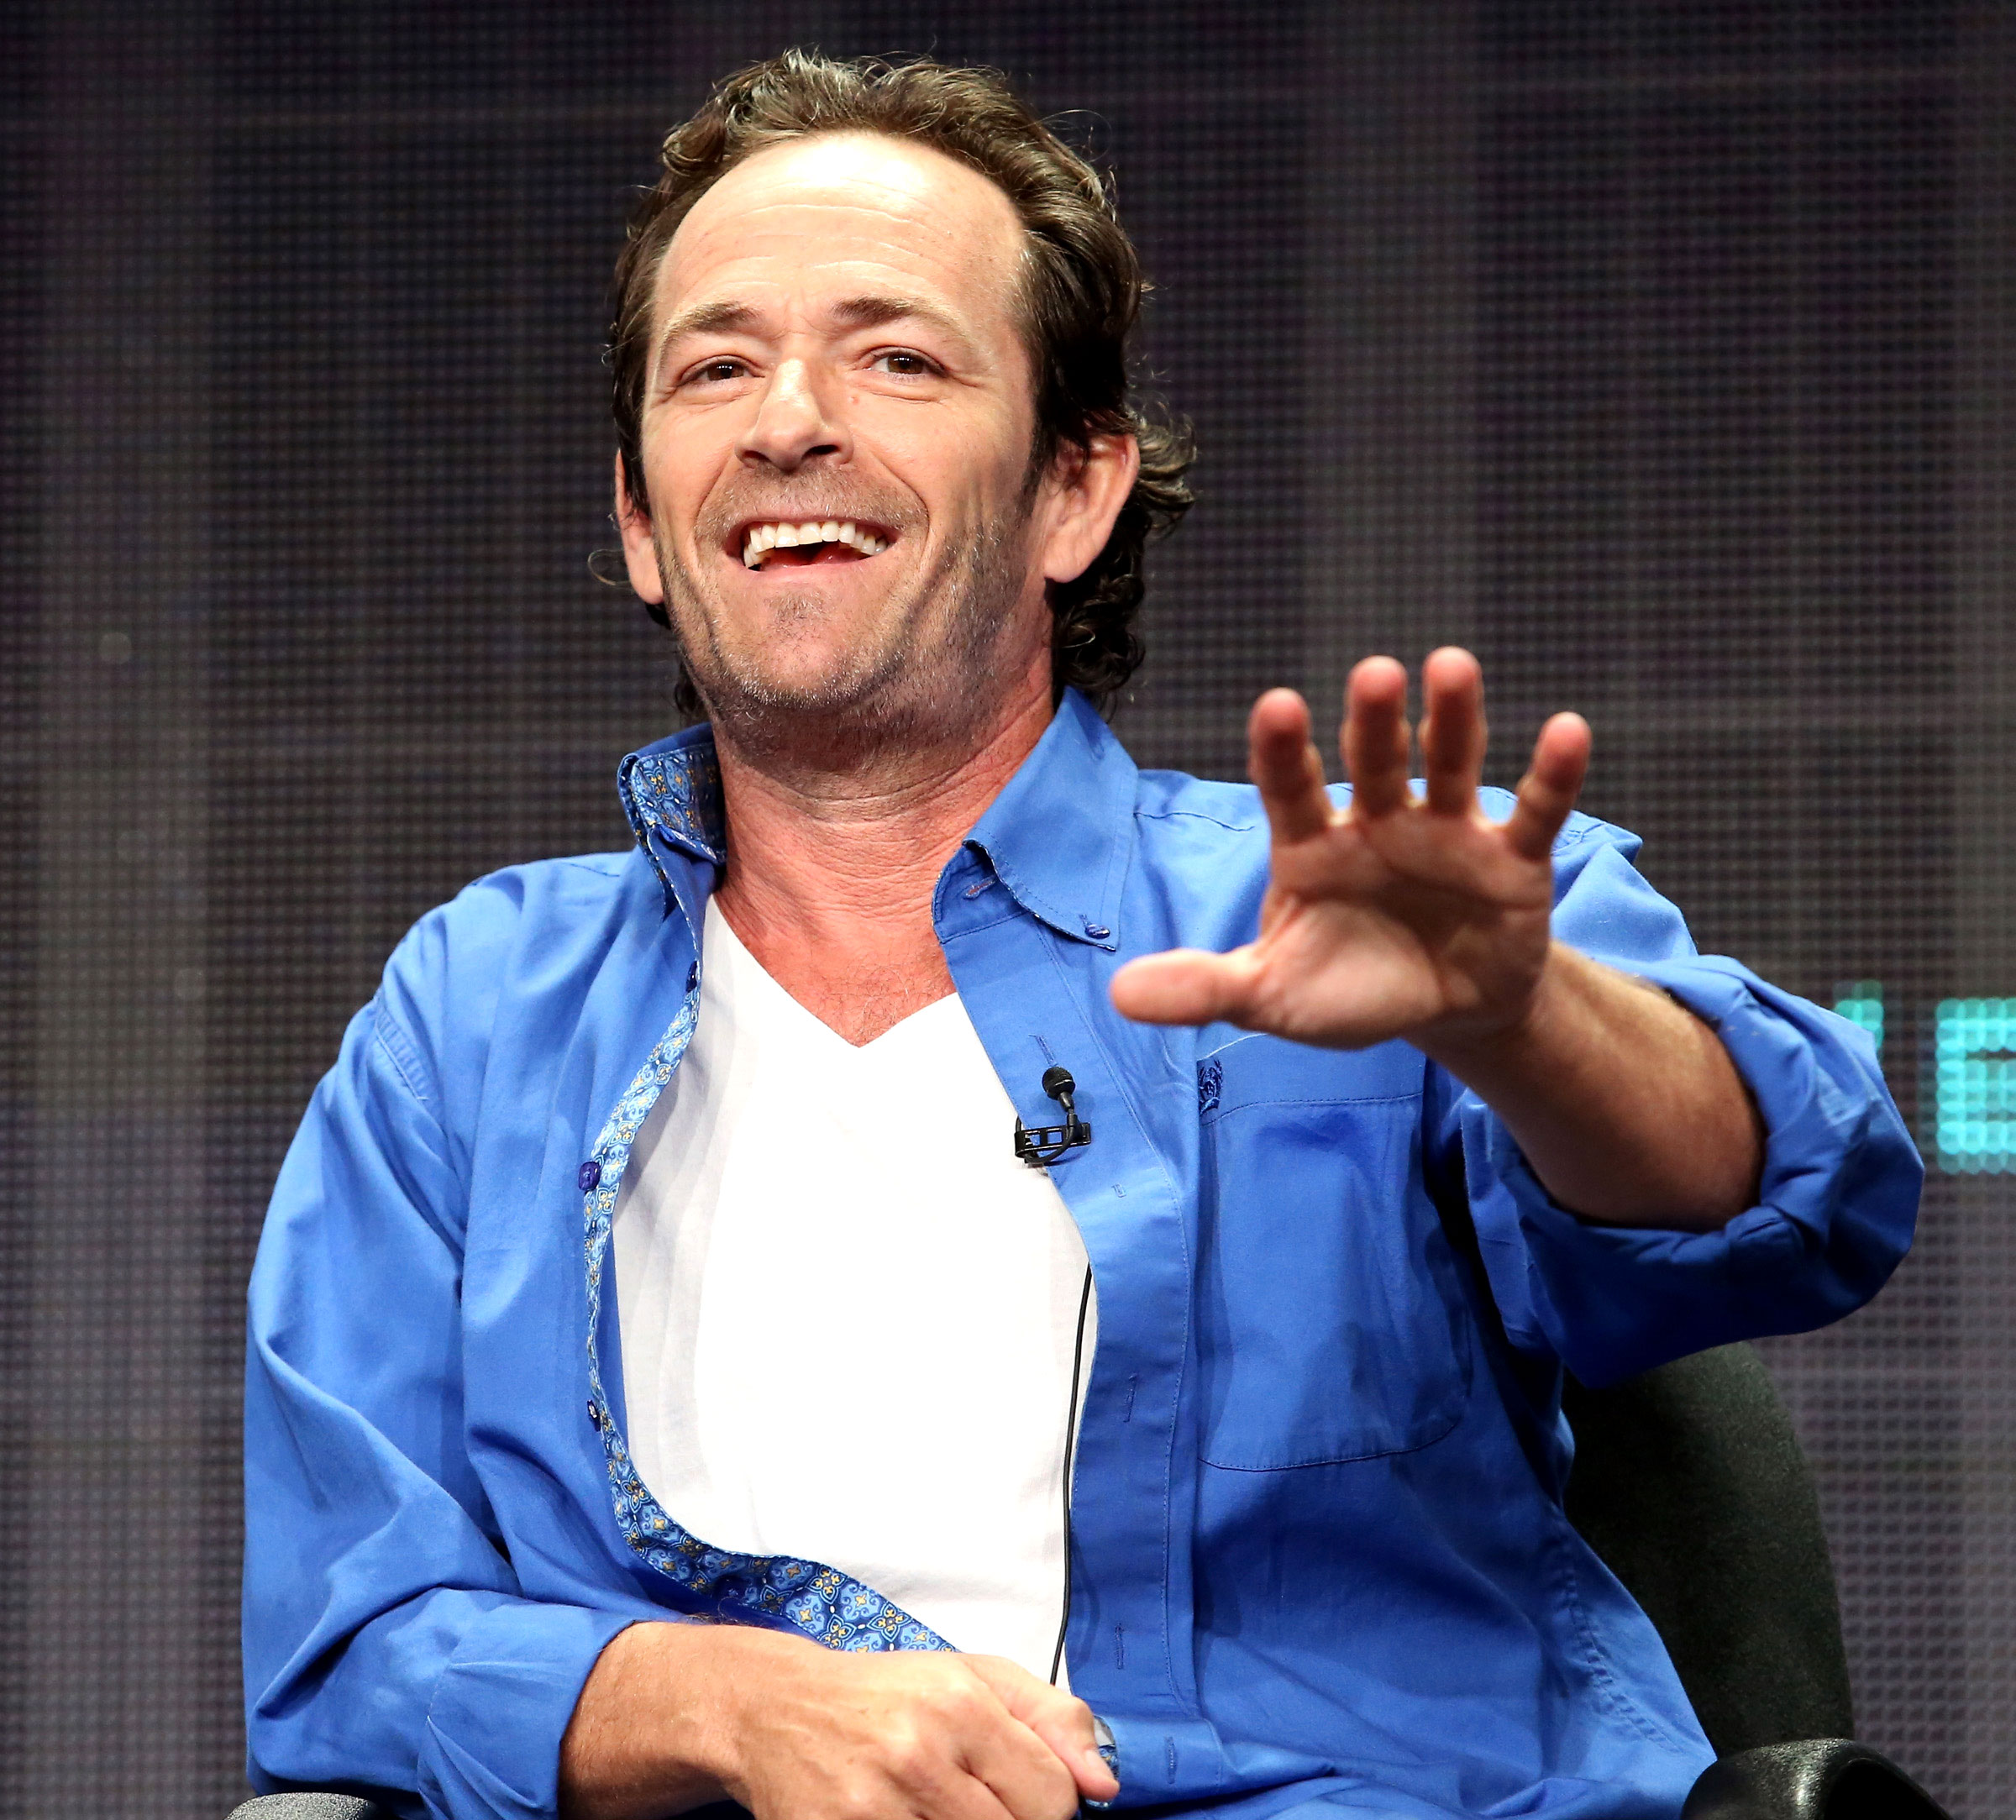 Luke Perry Through the Years - He revealed to Fox News in March 2017 that he had precancerous growths removed after the anomalies were discovered during a 2015 colonoscopy.